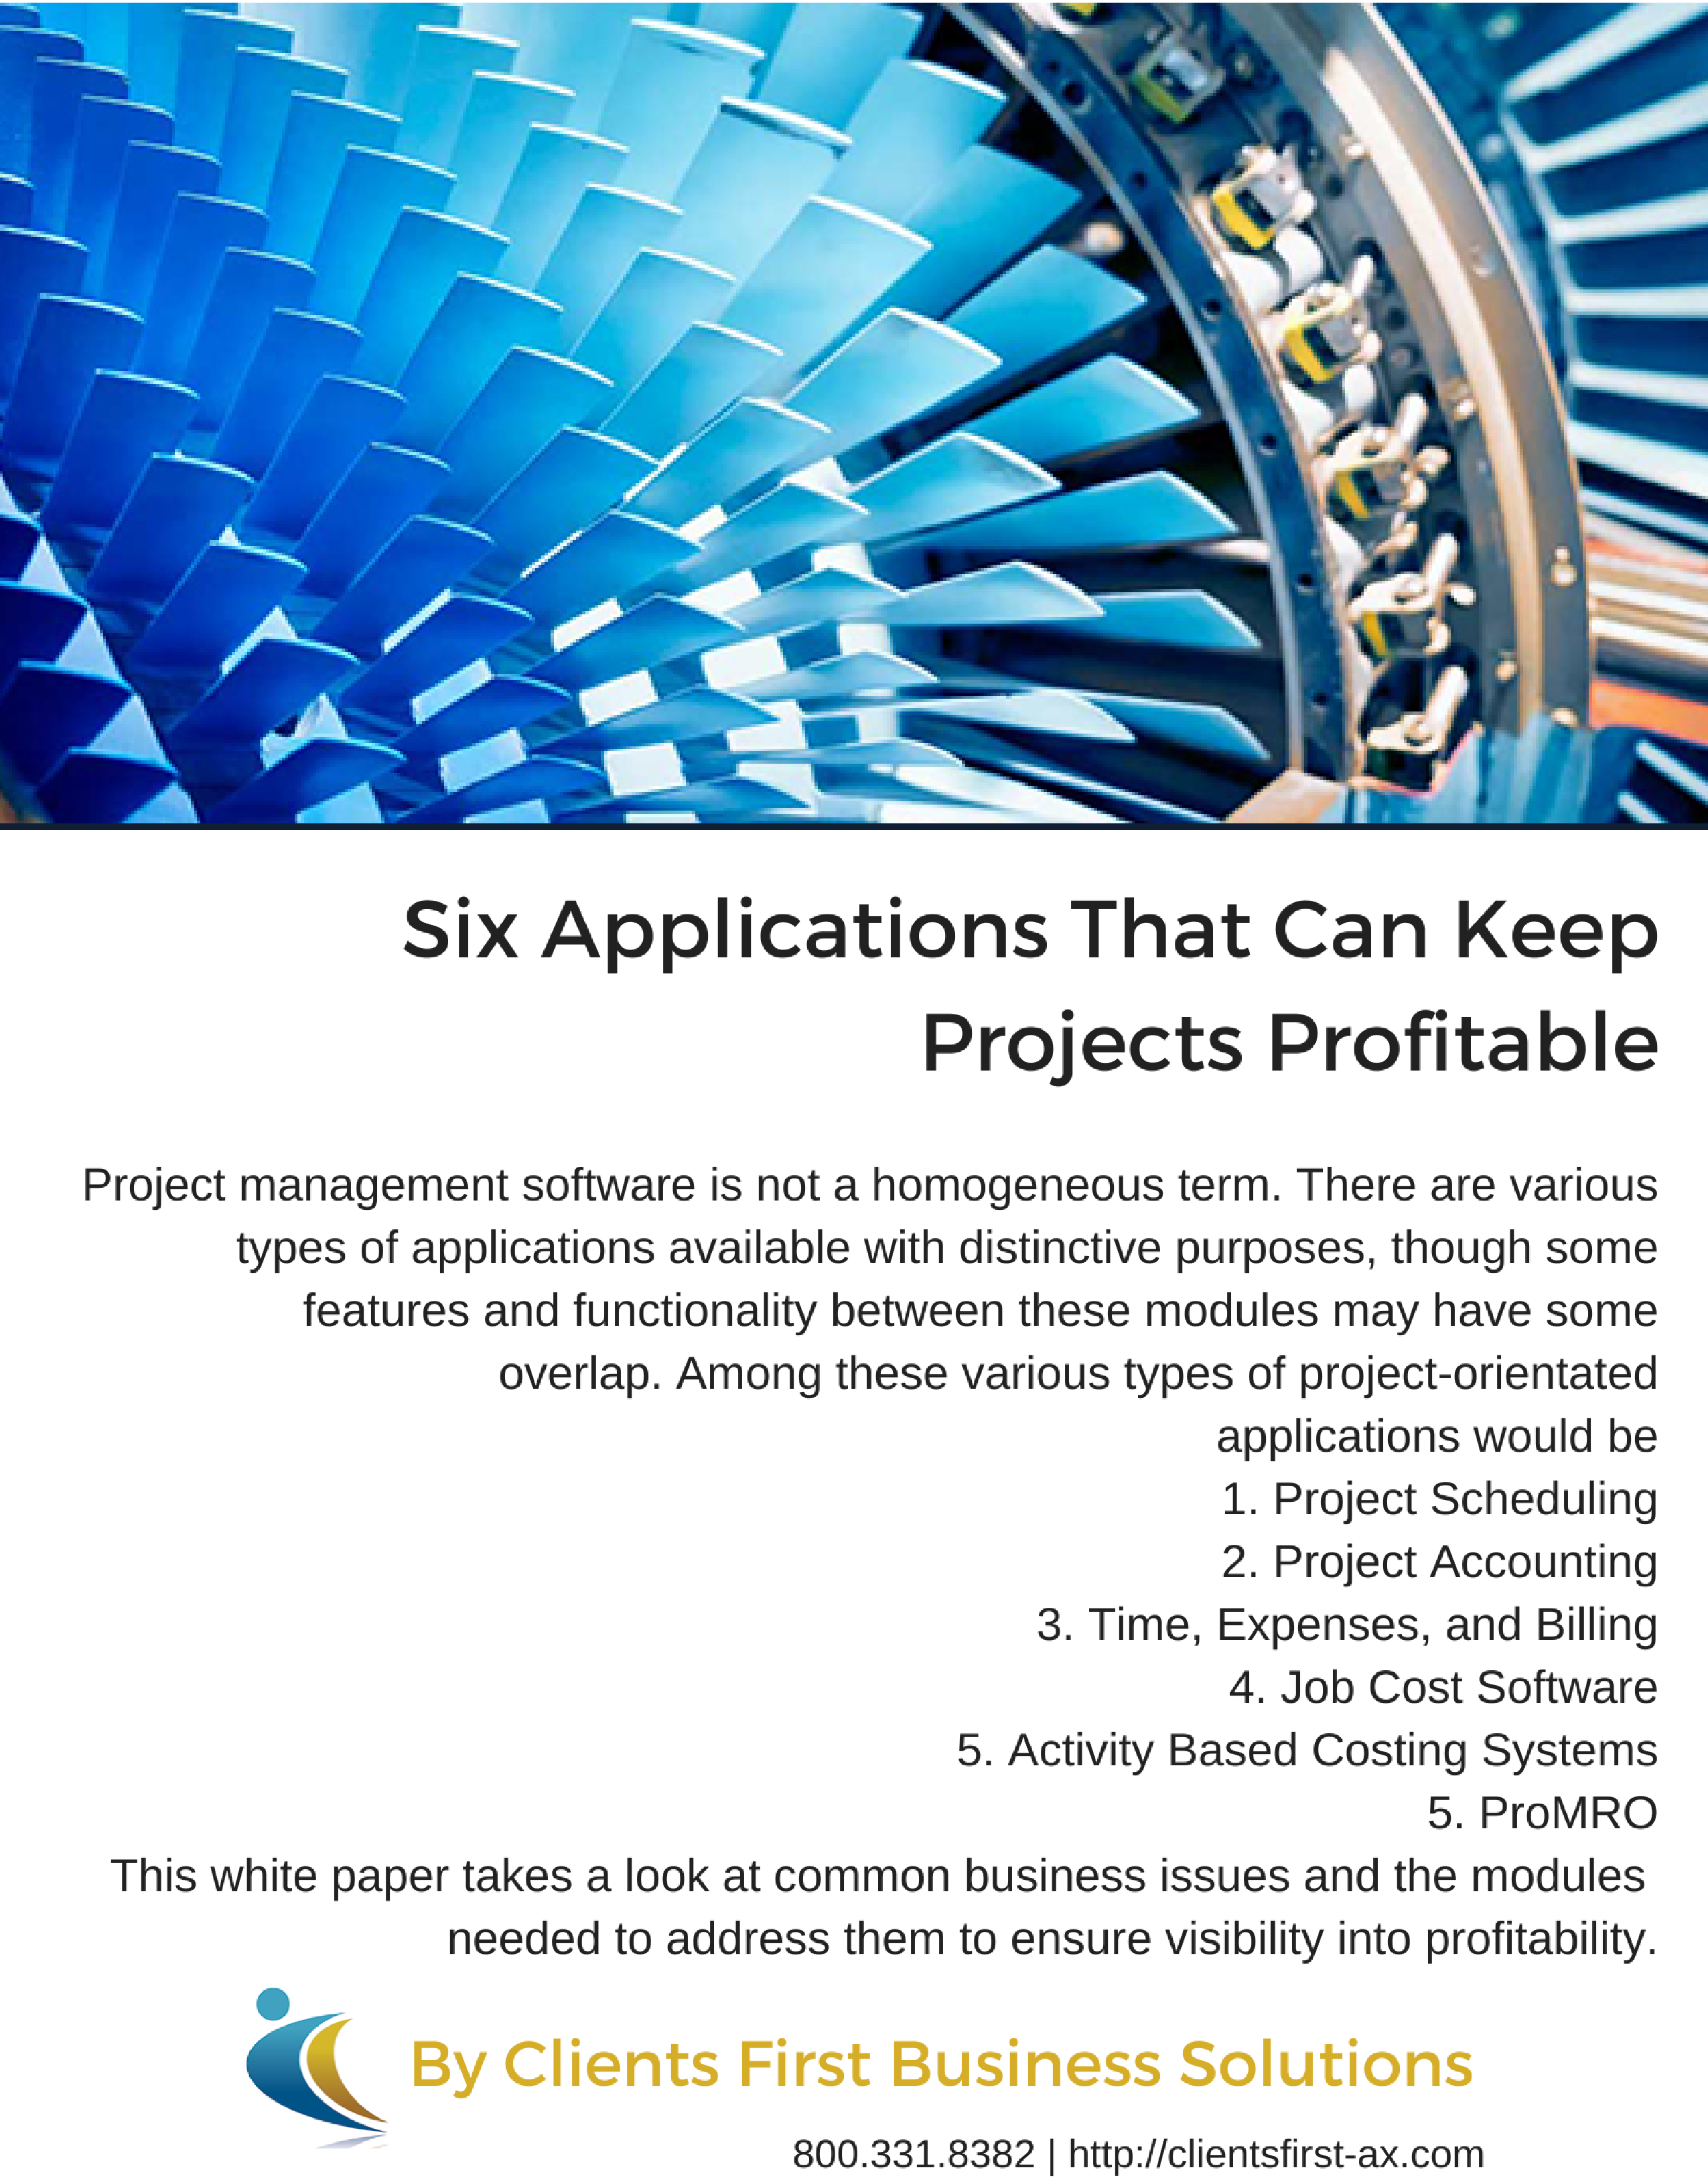 6 Apps for Profitable Projects